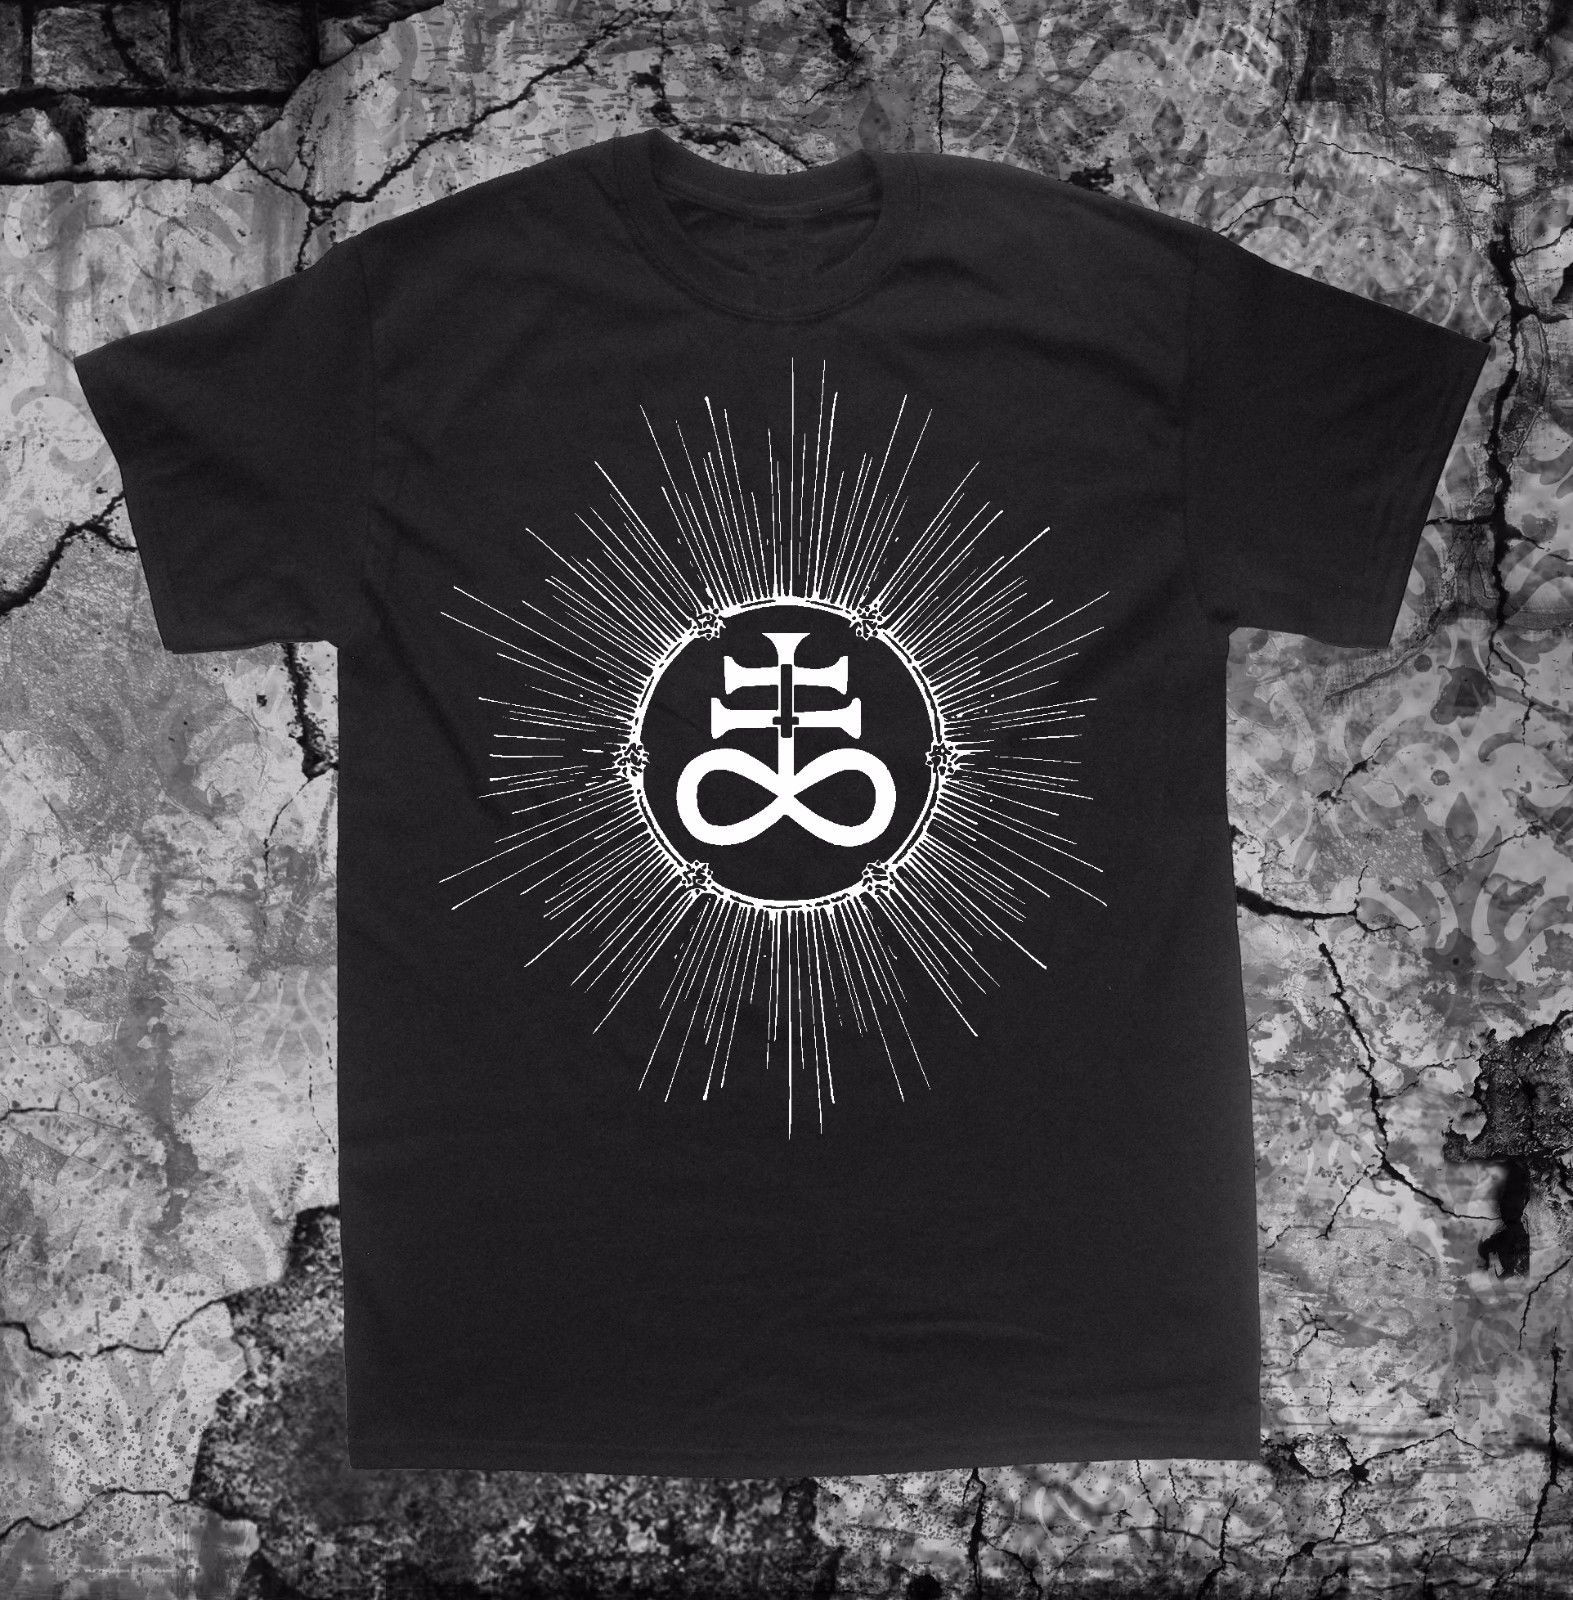 Leviathan Cross T Shirt Punk Occult Gothic Baphomet Satanic Goat Skull Pentagram T Shirt Fashiont Shirt Free Shipping Top Tee in T Shirts from Men 39 s Clothing